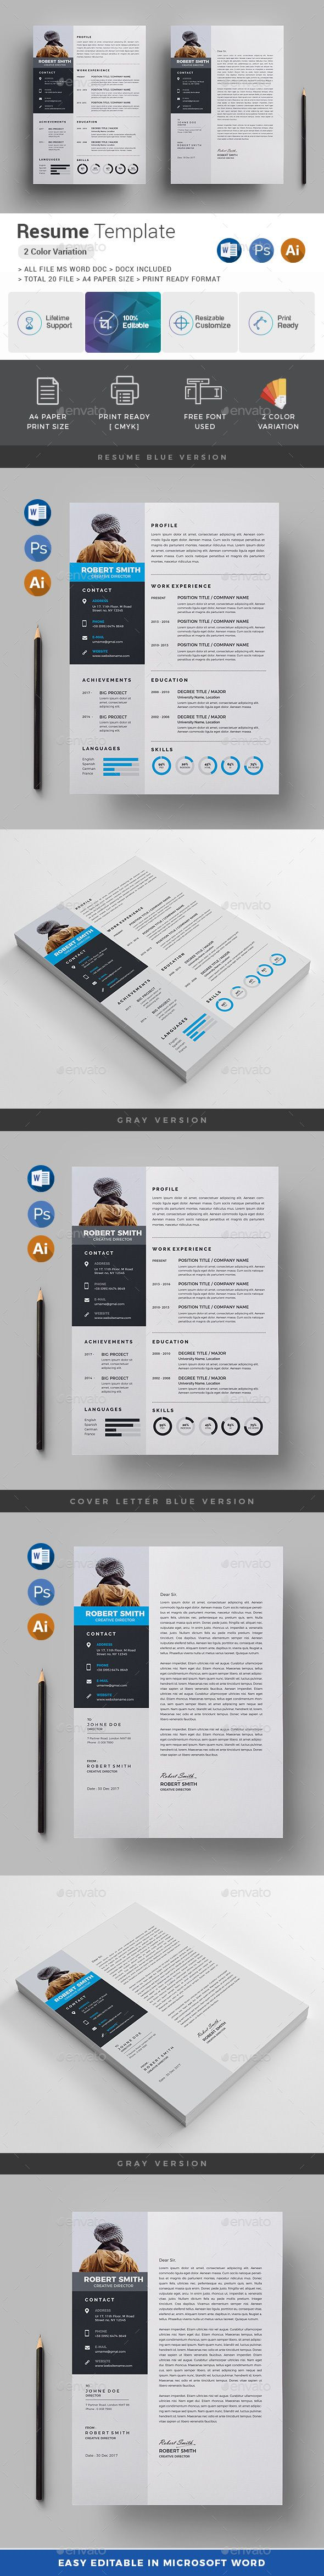 Resume  Adobe Photoshop Adobe And Print Templates